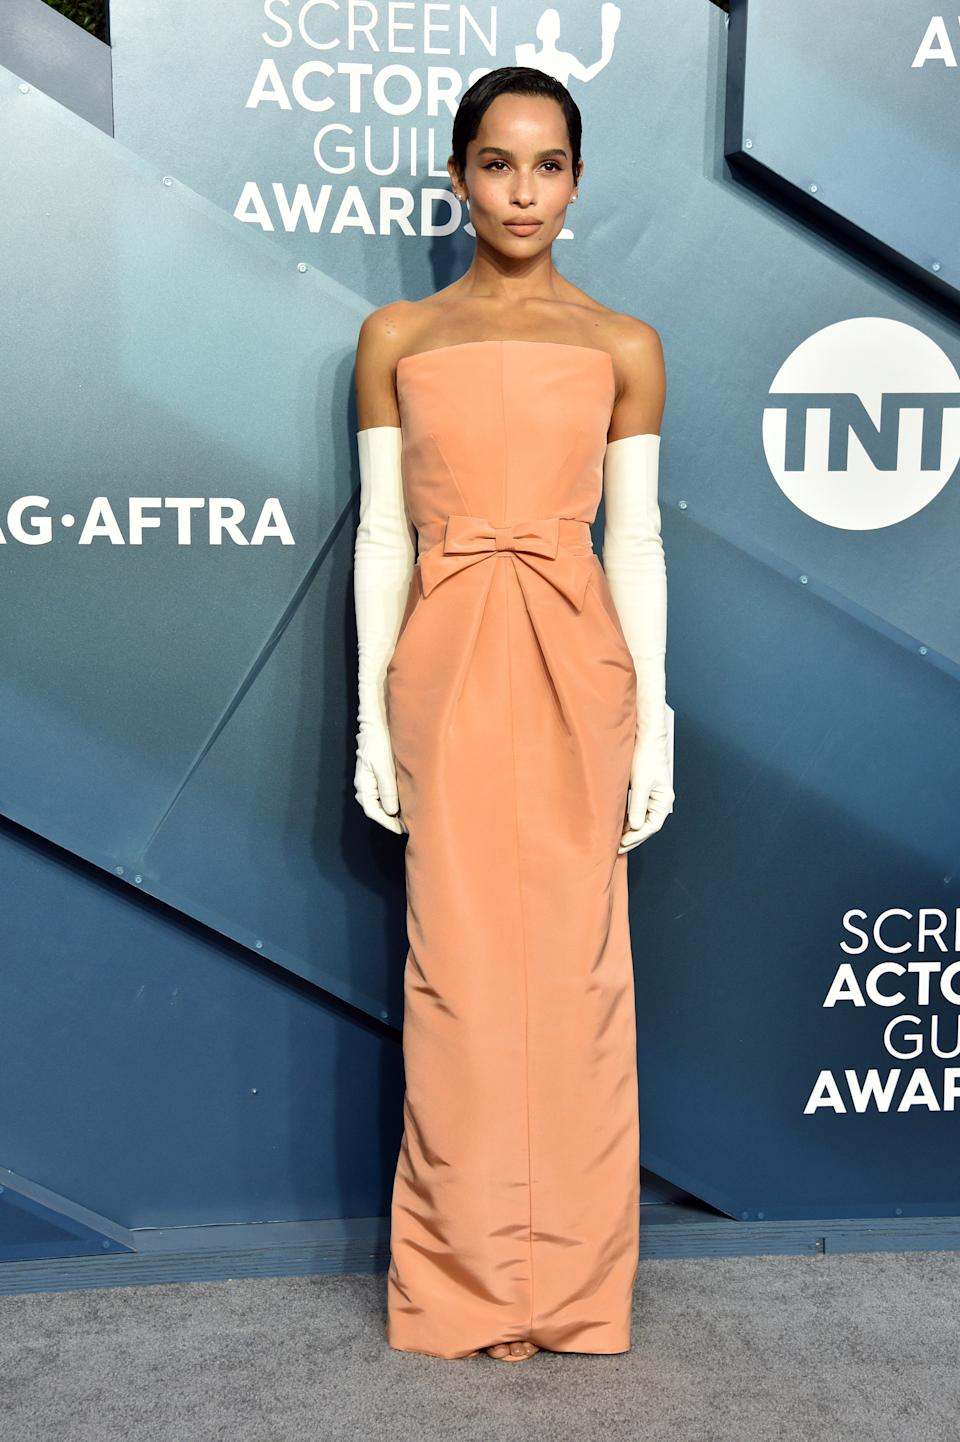 """<h2>Zoë Kravitz in Oscar de la Renta</h2><br>Zoë Kravitz just made all of our dreams come true in this Creamsicle-colored strapless gown paired with white evening clothes.<span class=""""copyright"""">Photo by Gregg DeGuire/Getty Images for Turner.</span>"""